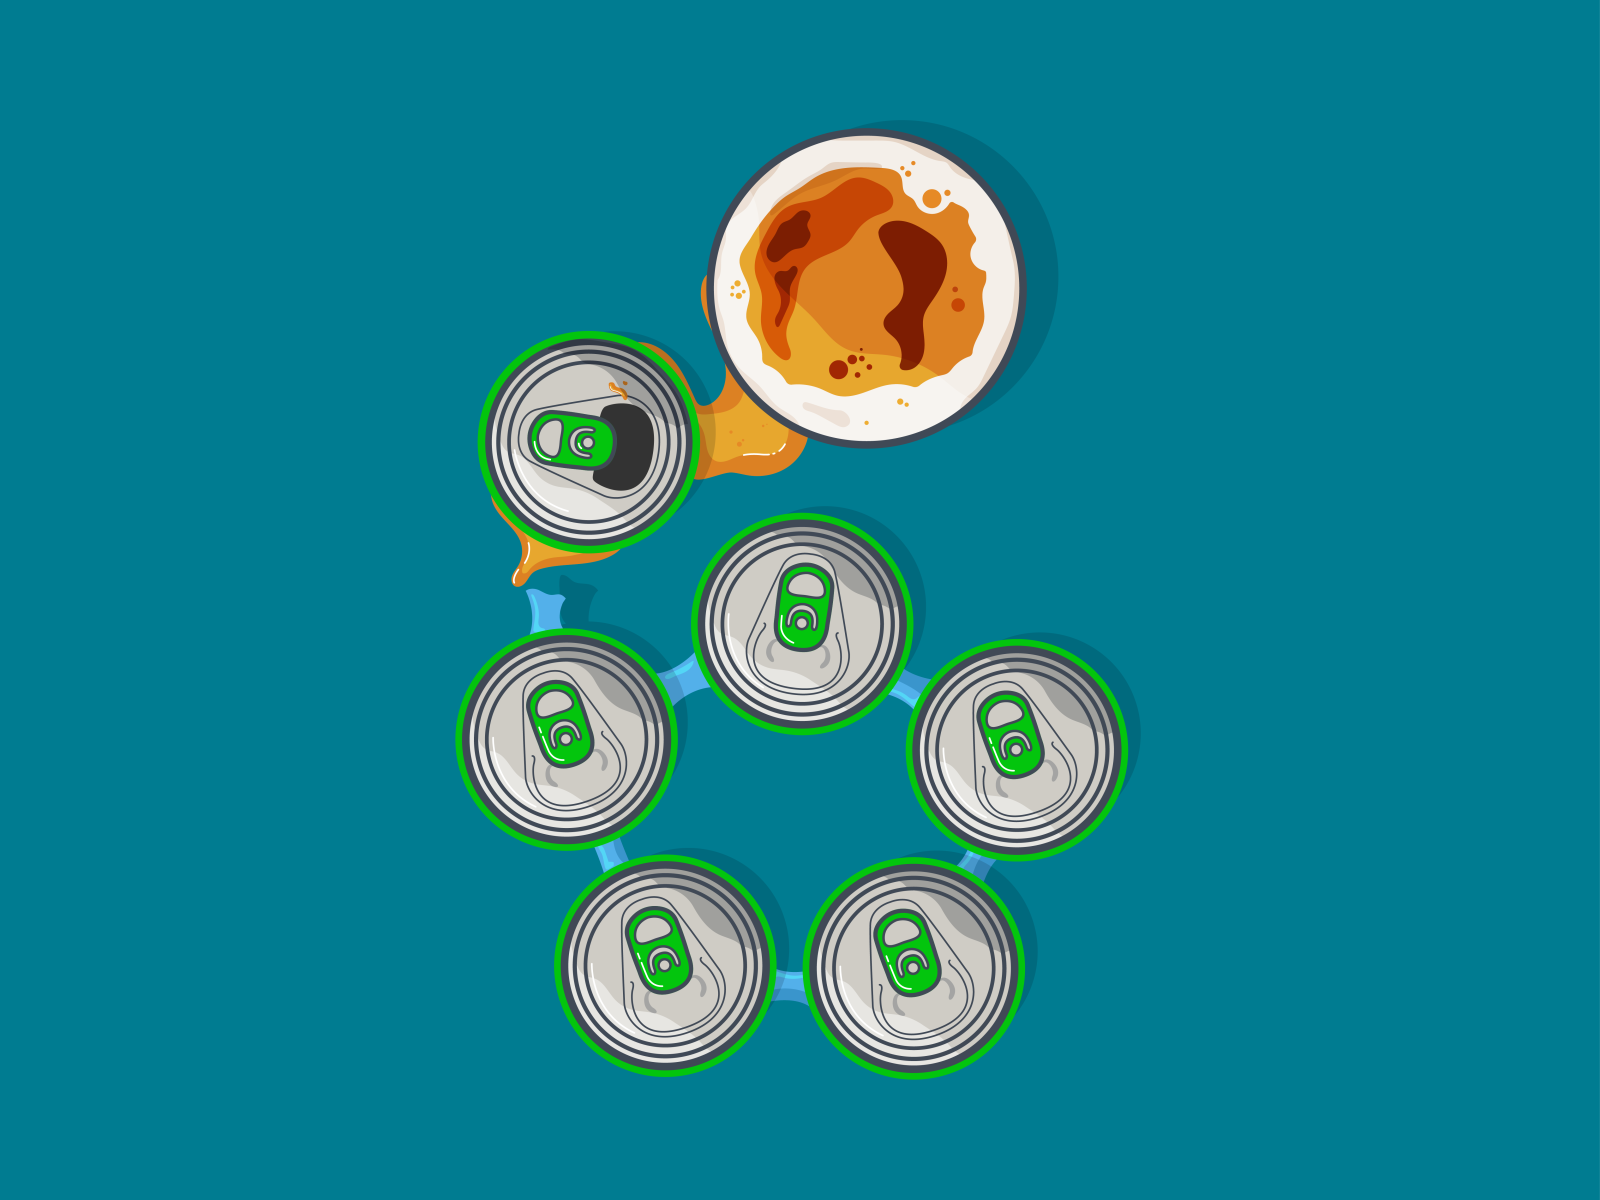 The Closest I Ll Ever Get To A Six Pack By Illustrobtion On Dribbble